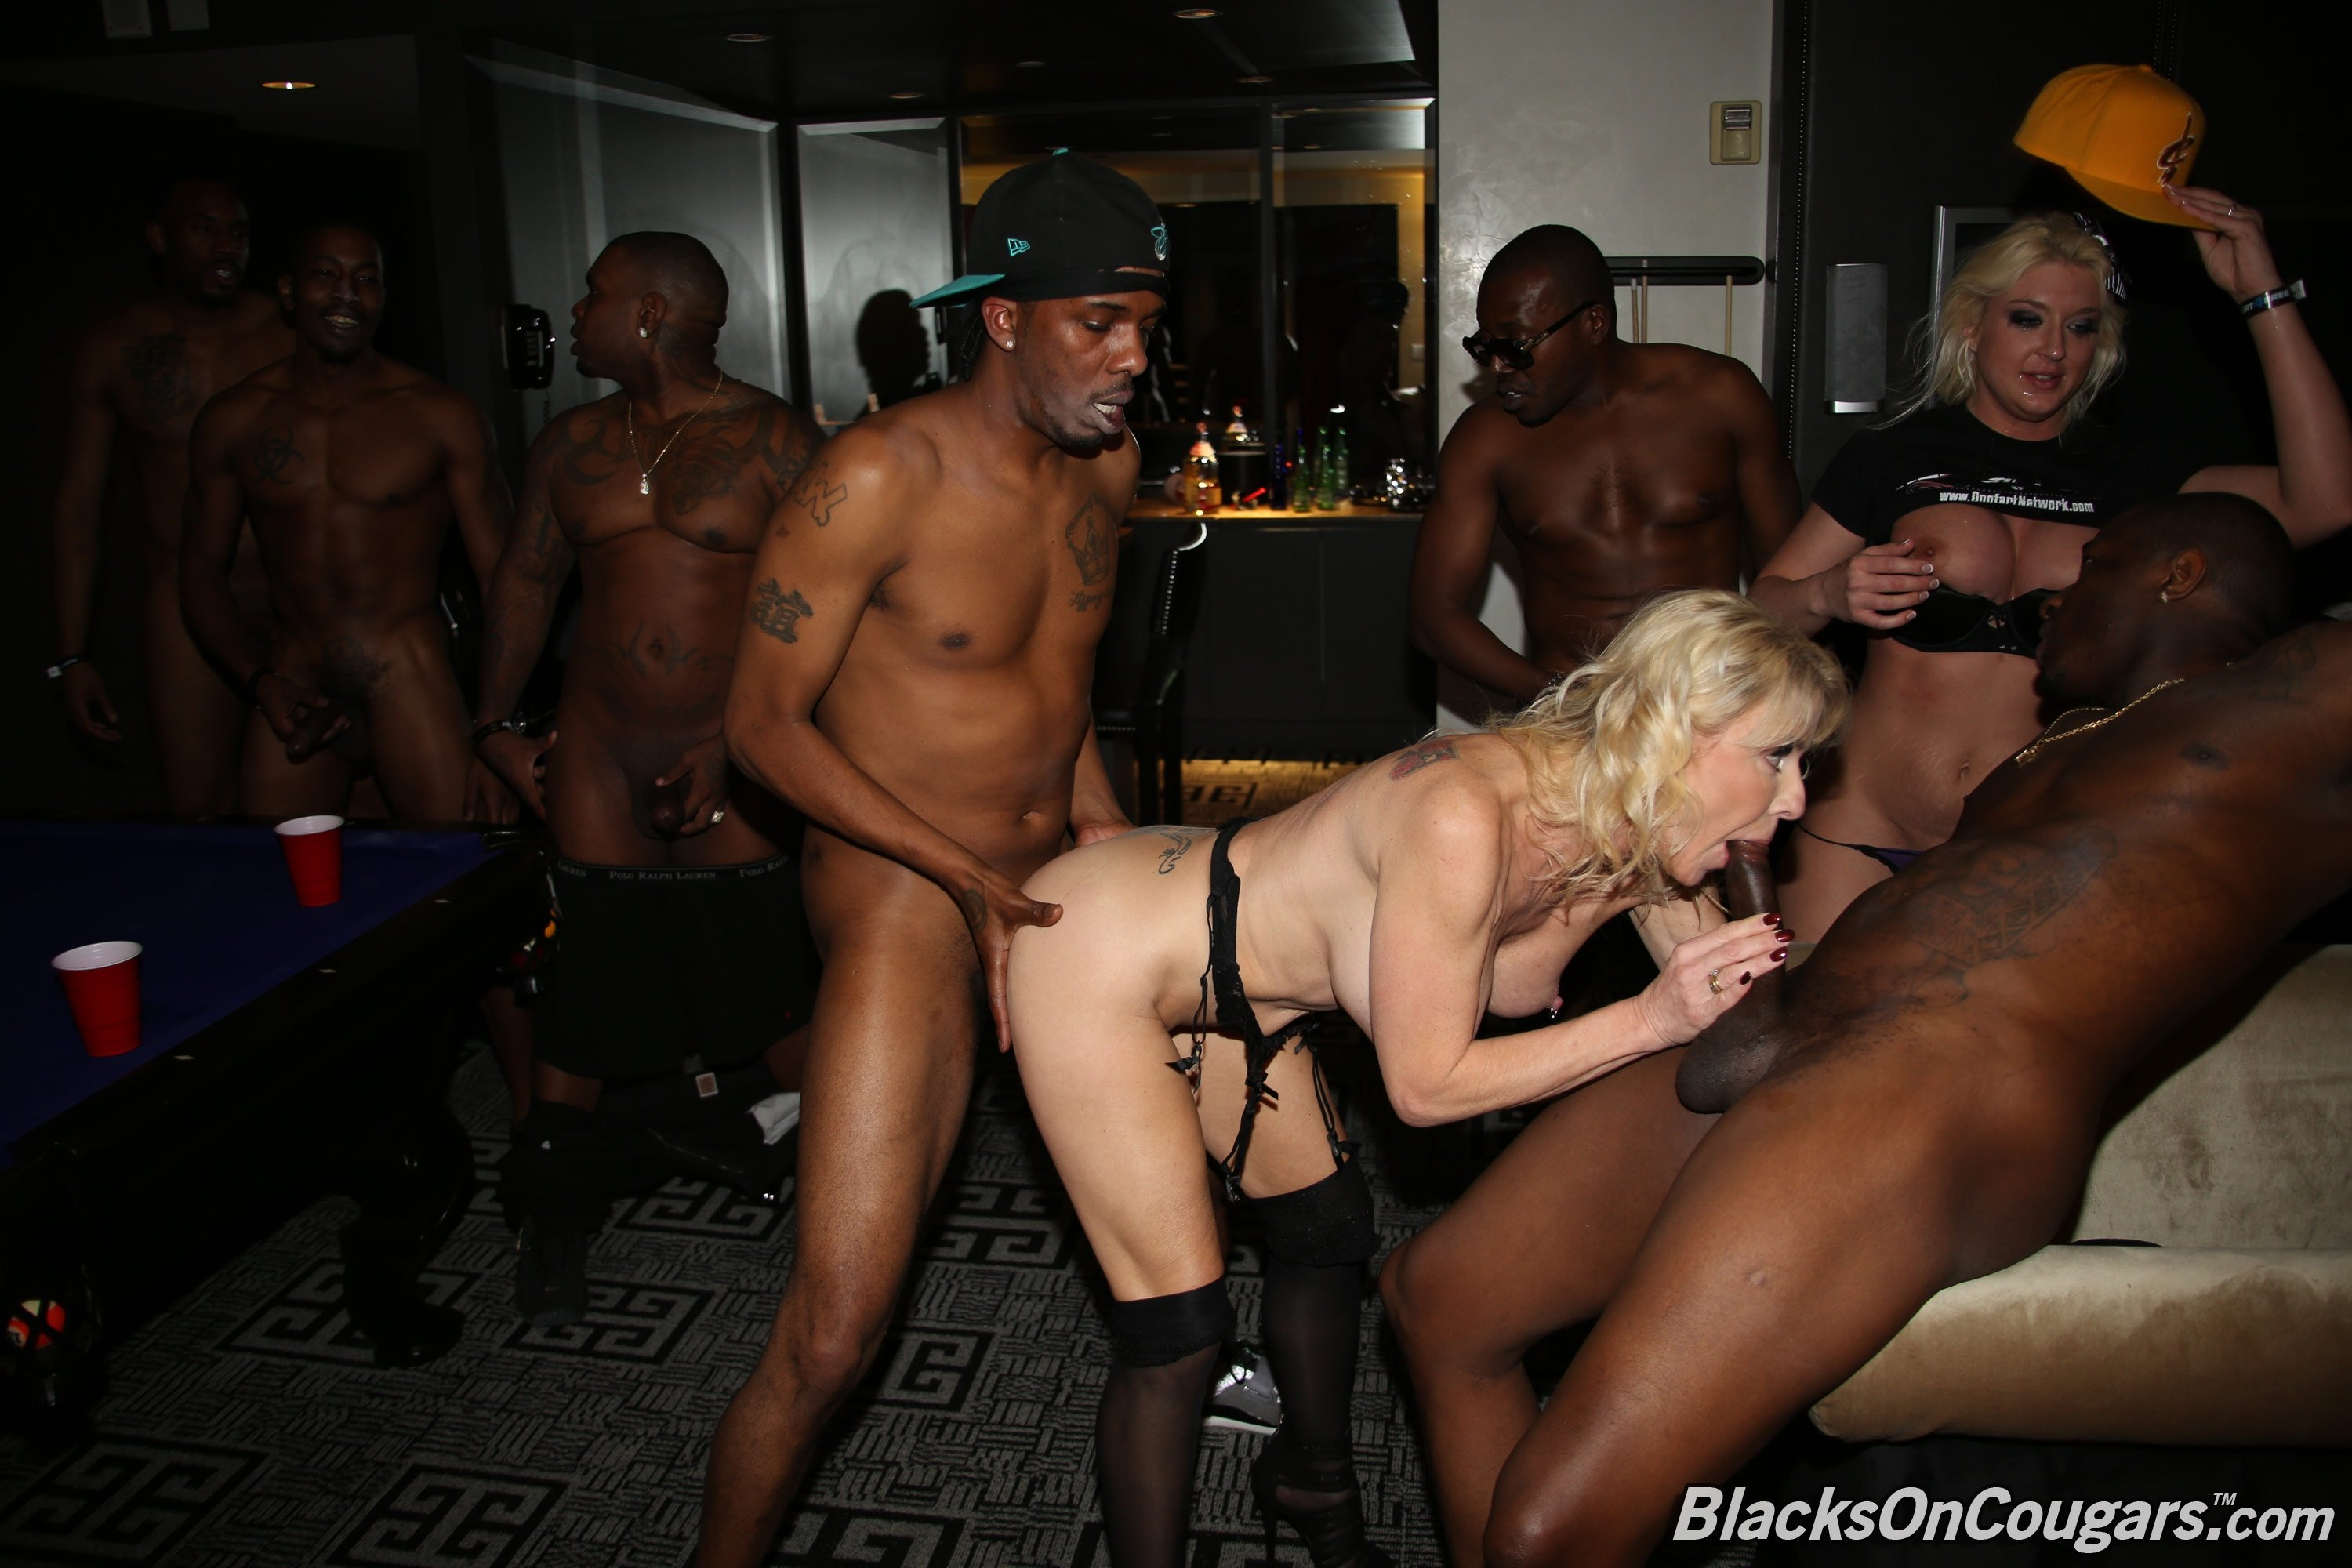 Remarkable Interracial gang bang movie seems magnificent